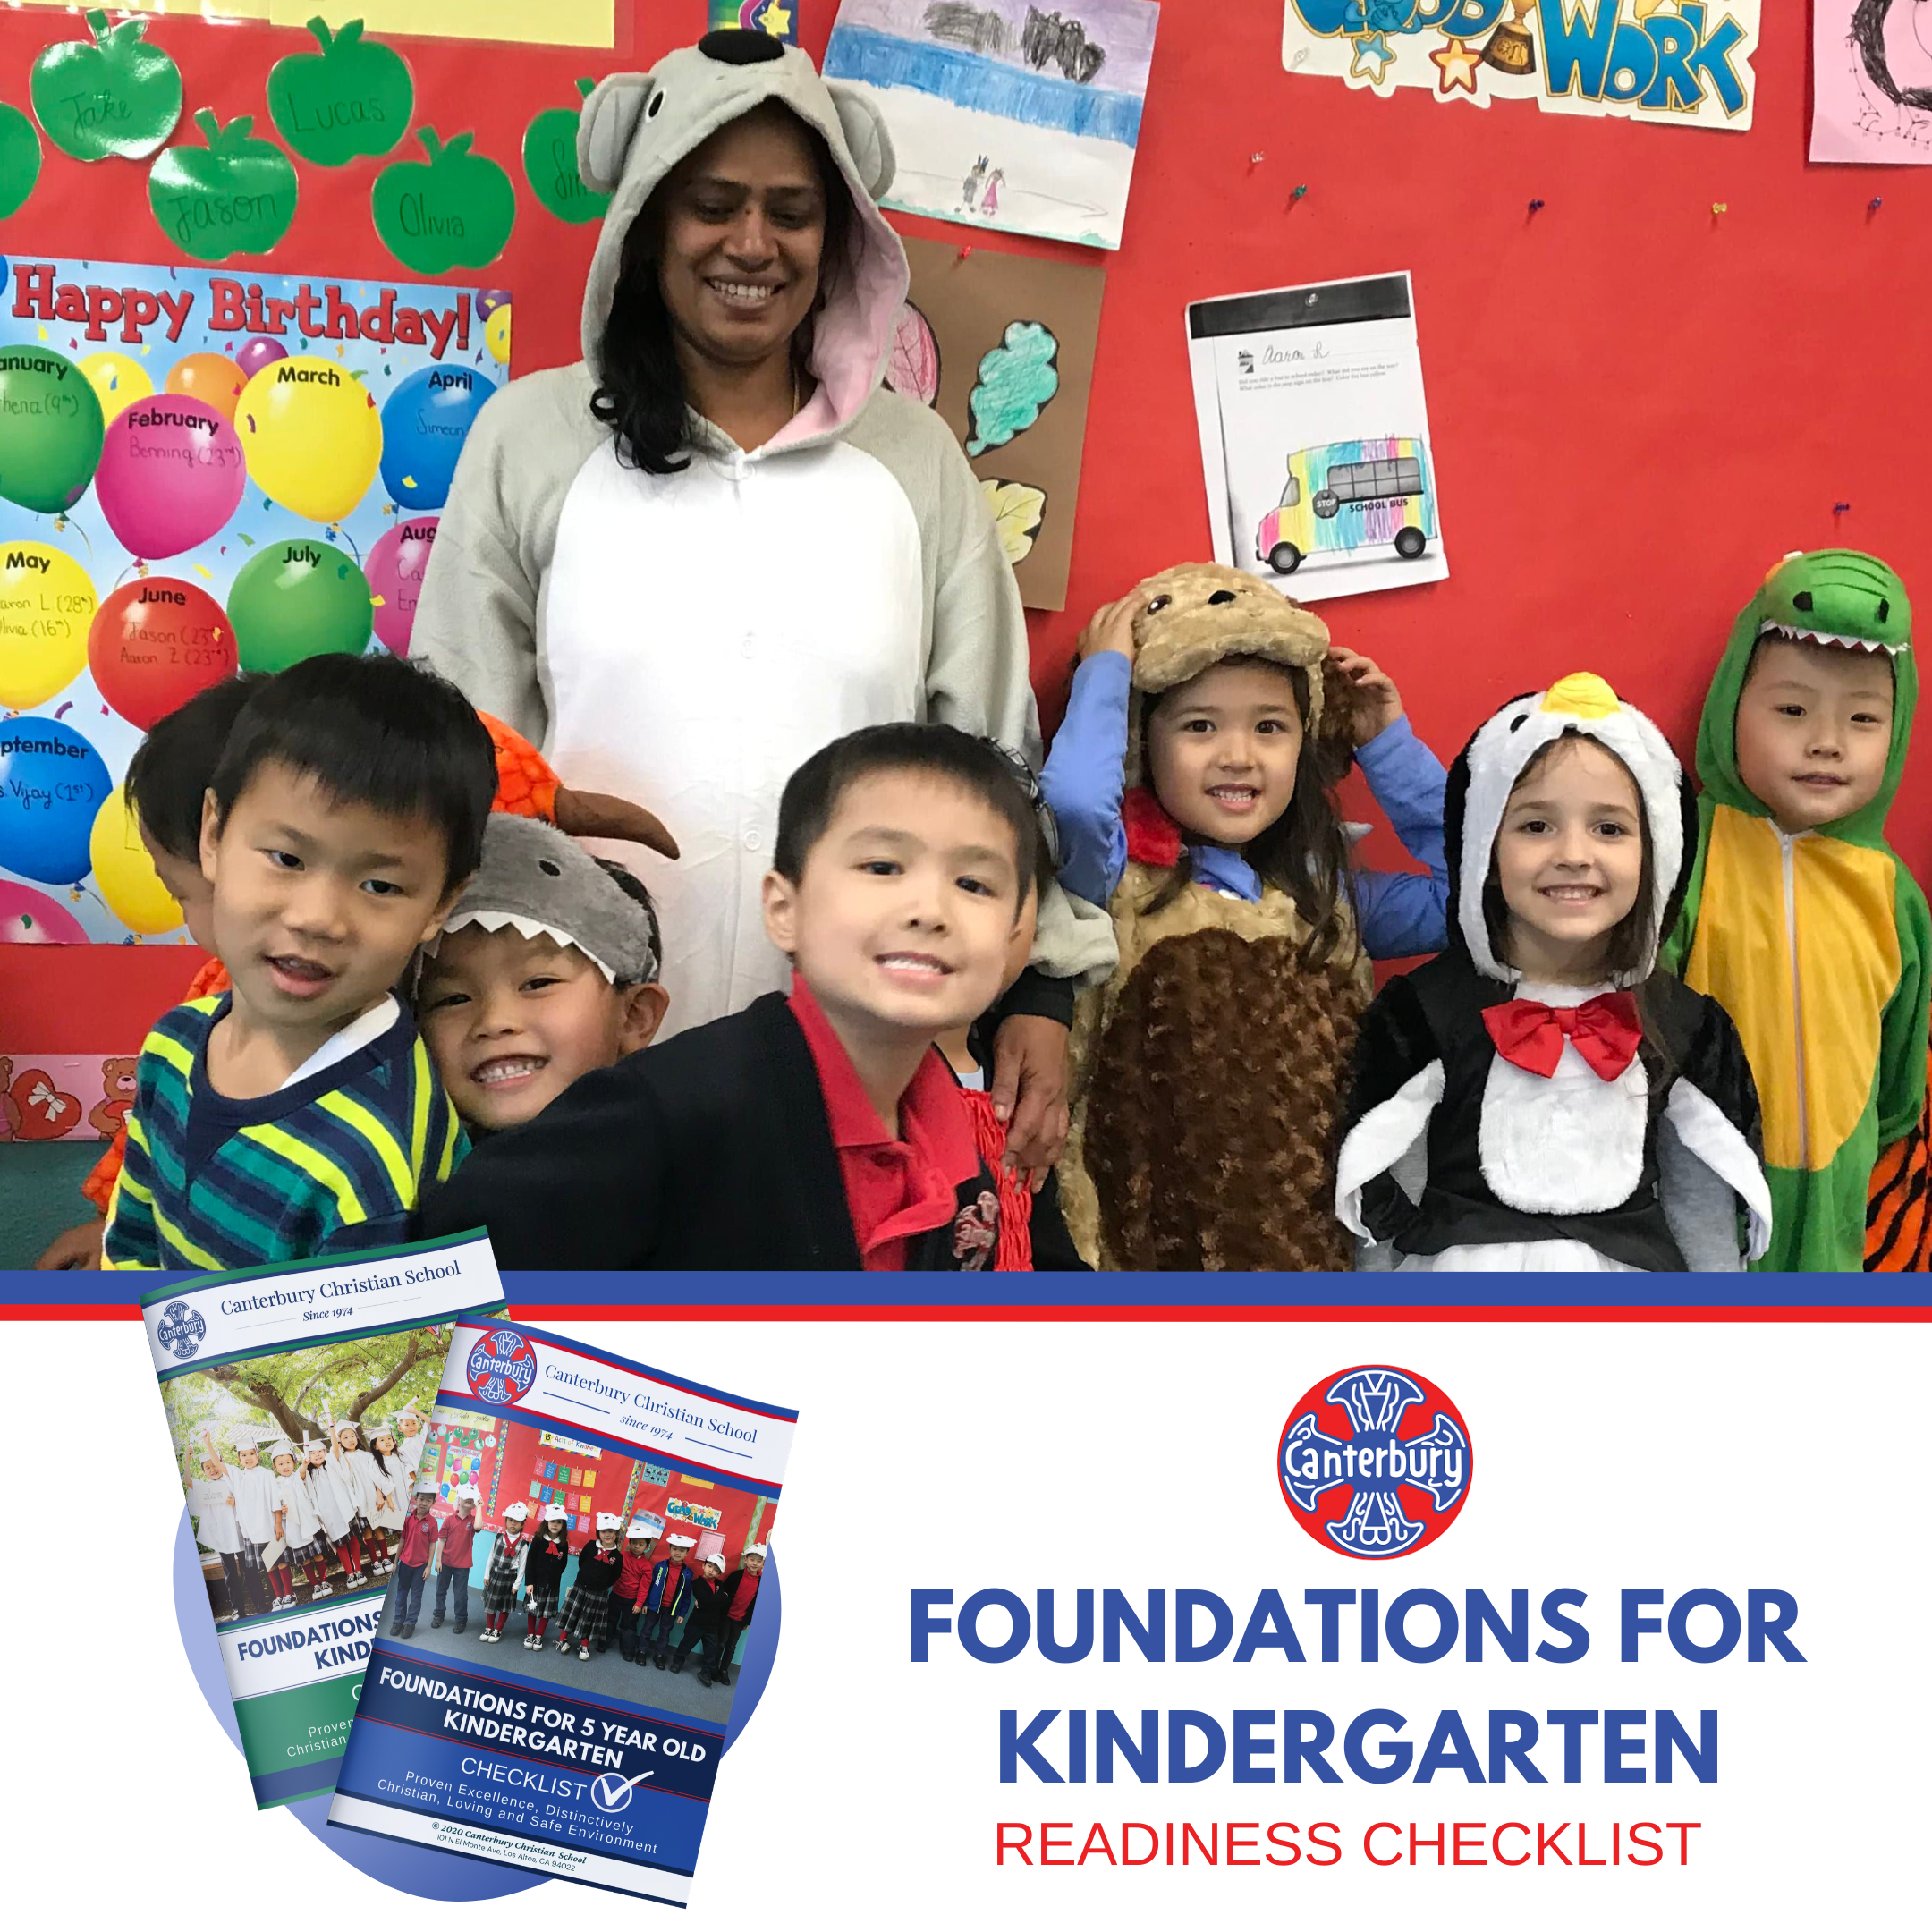 Foundations for Kindergarten Readiness Checklist